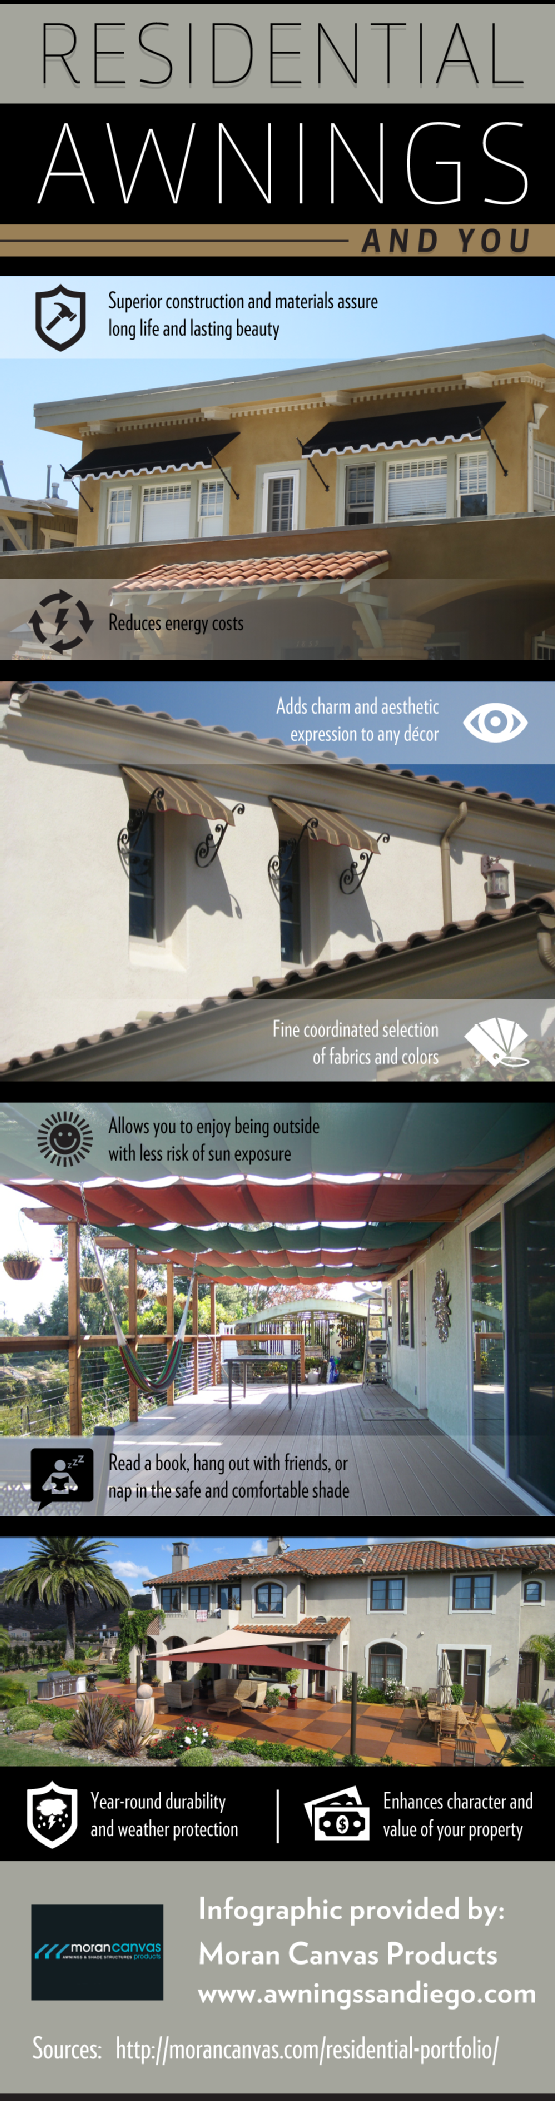 Residential-Awnings-And-You-Infographic1 One day when I ...